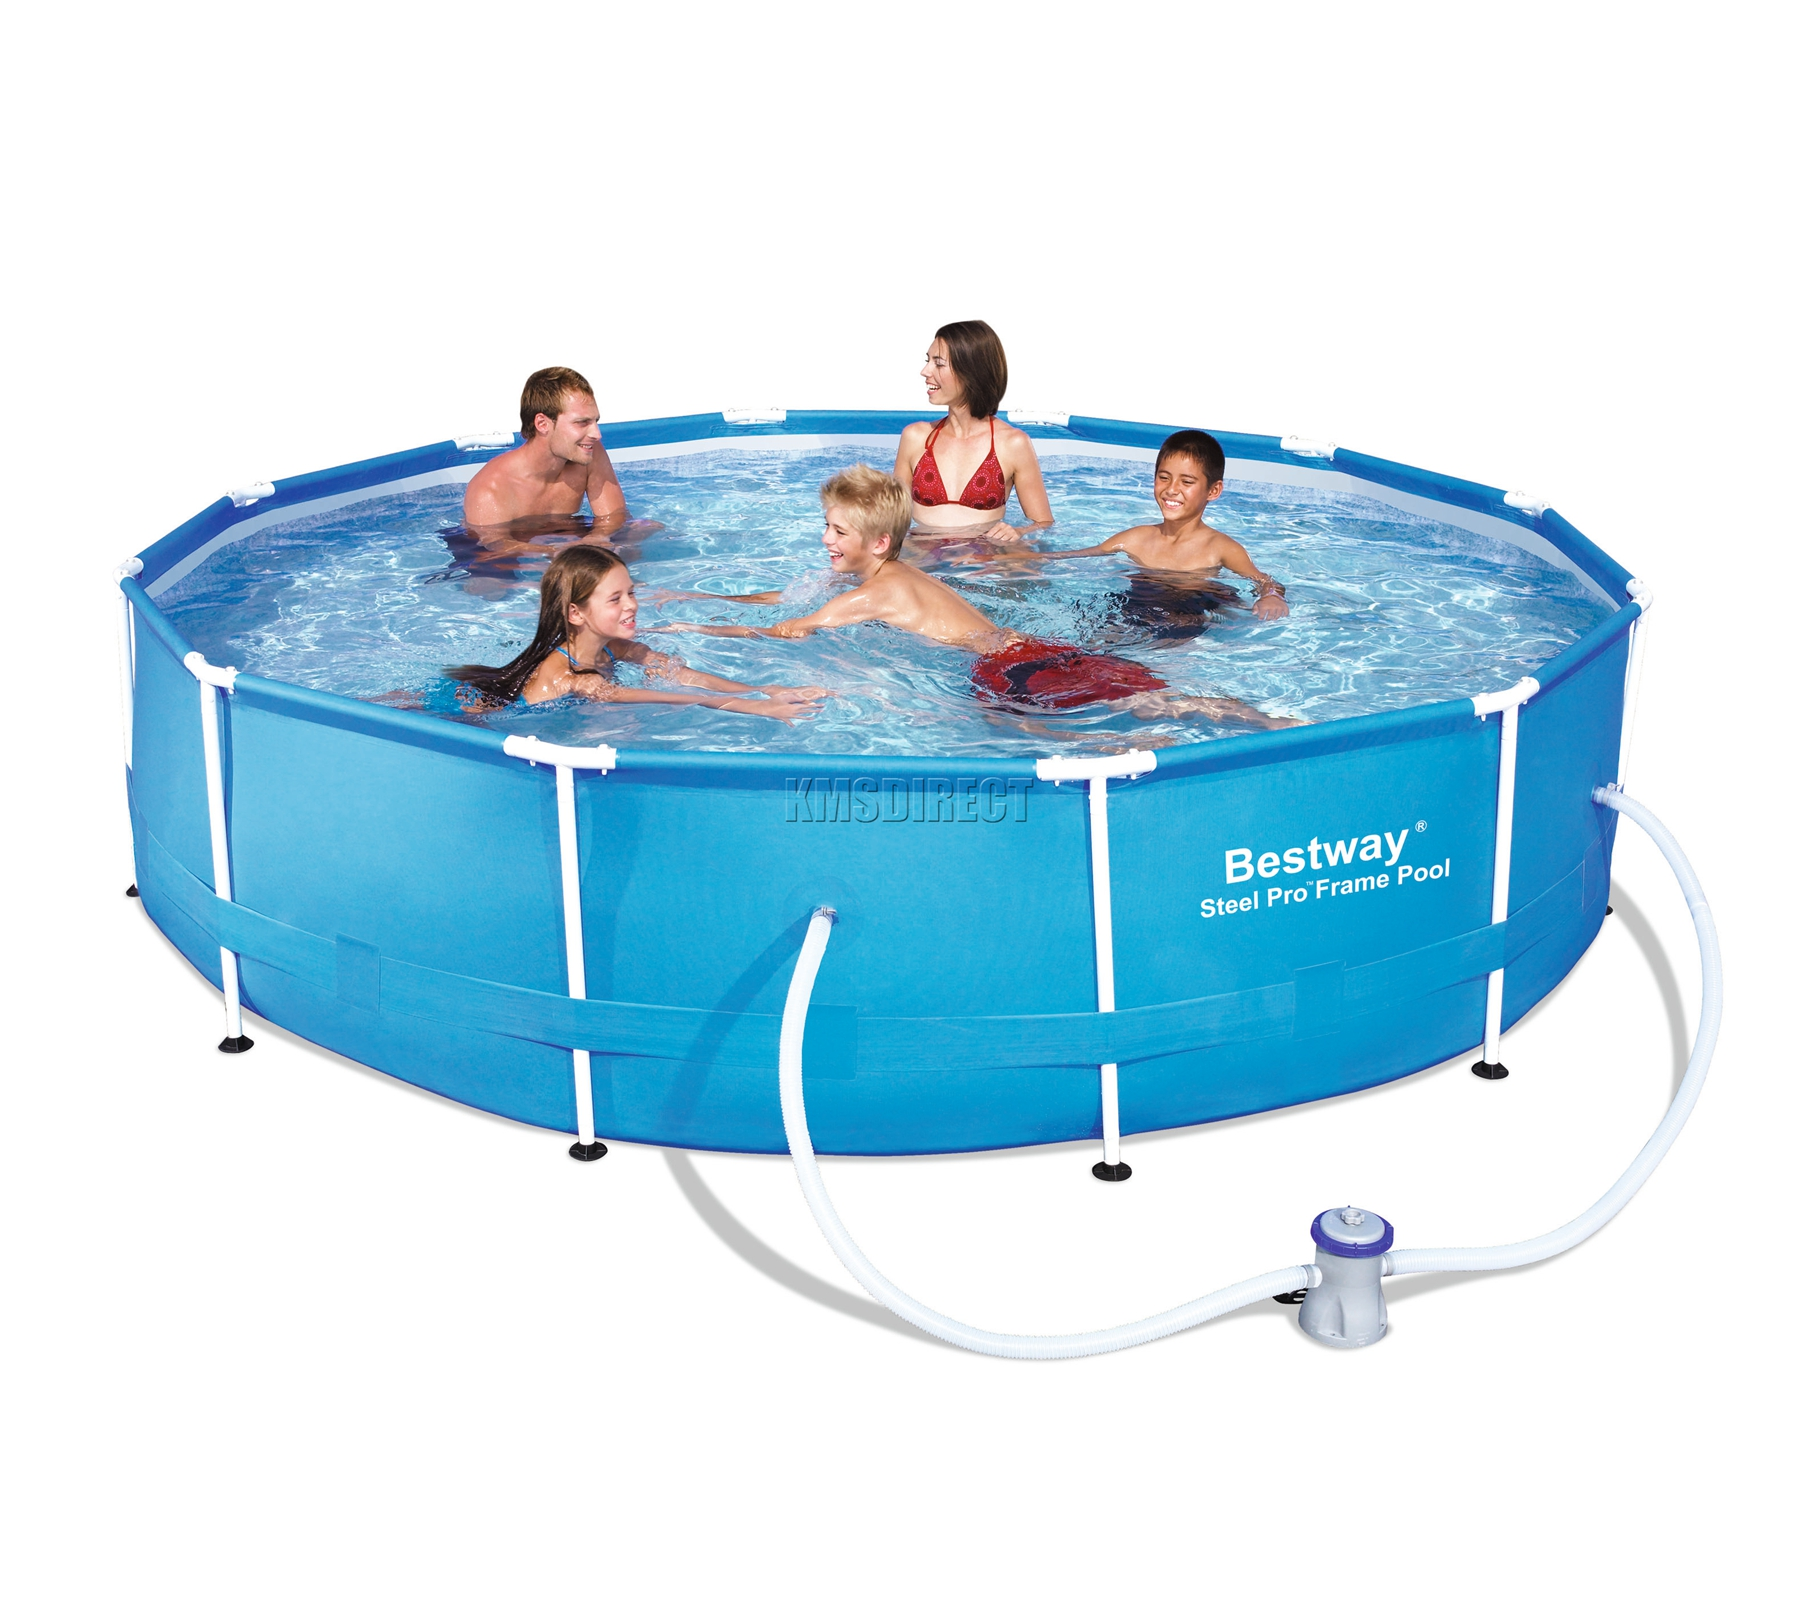 bestway steel pro frame swimming pool set round above ground 12ft x 30inch new ebay. Black Bedroom Furniture Sets. Home Design Ideas